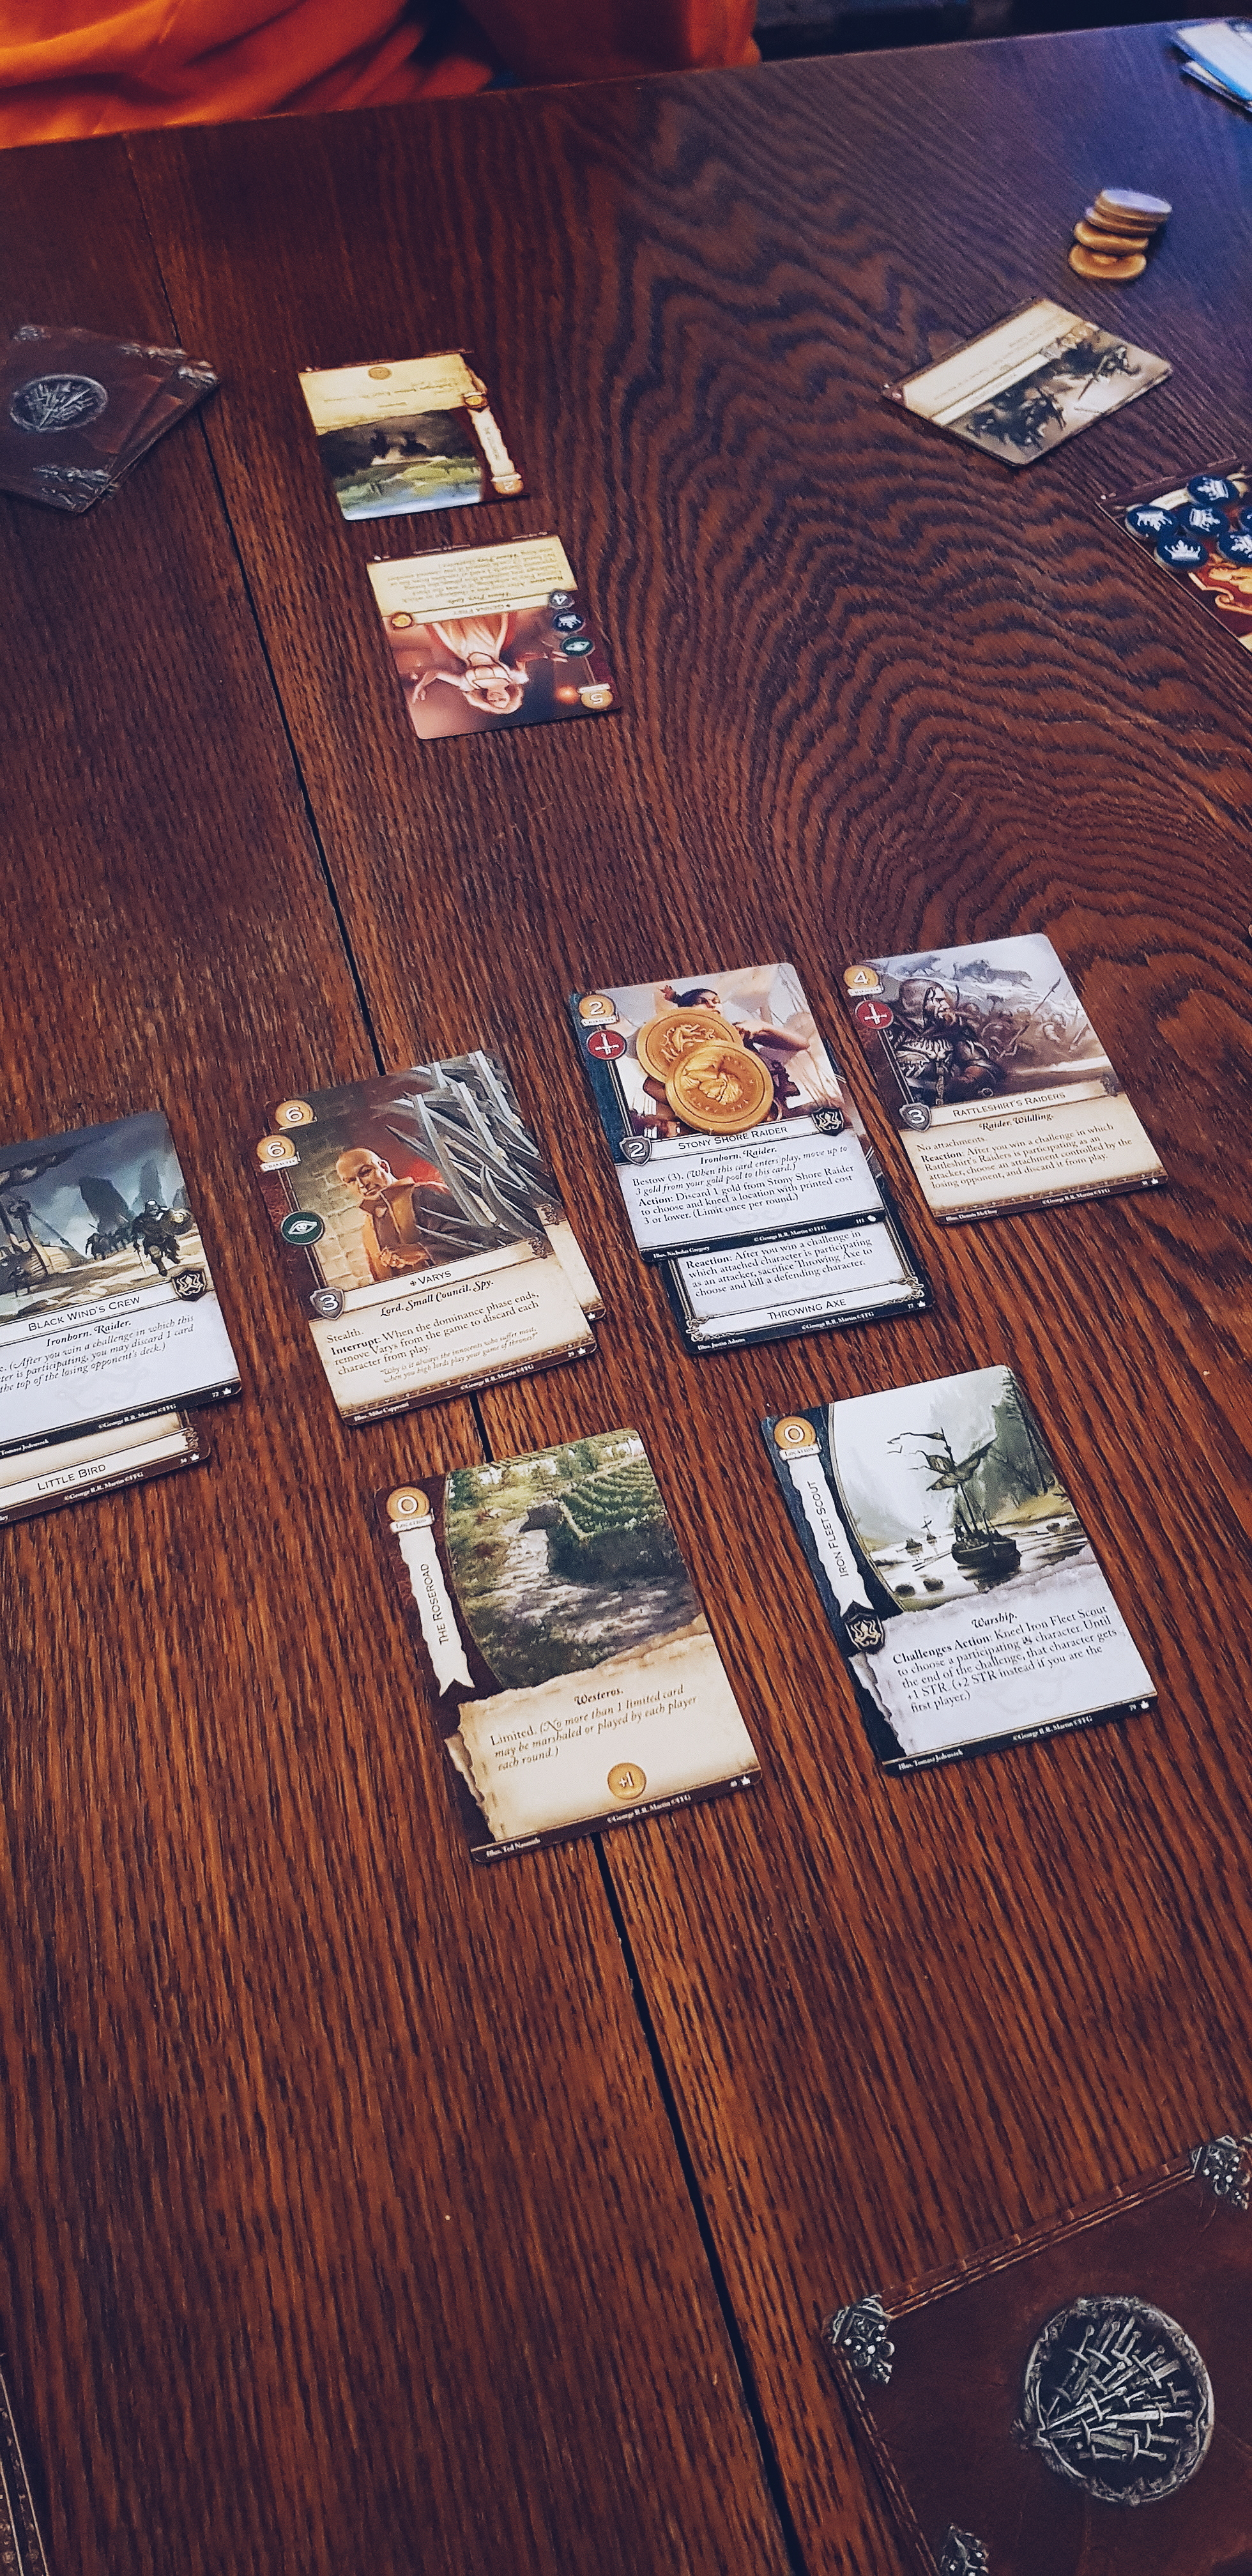 A photo of some playing cards laid out on a wooden table. The game is a Game of Thrones living card game.